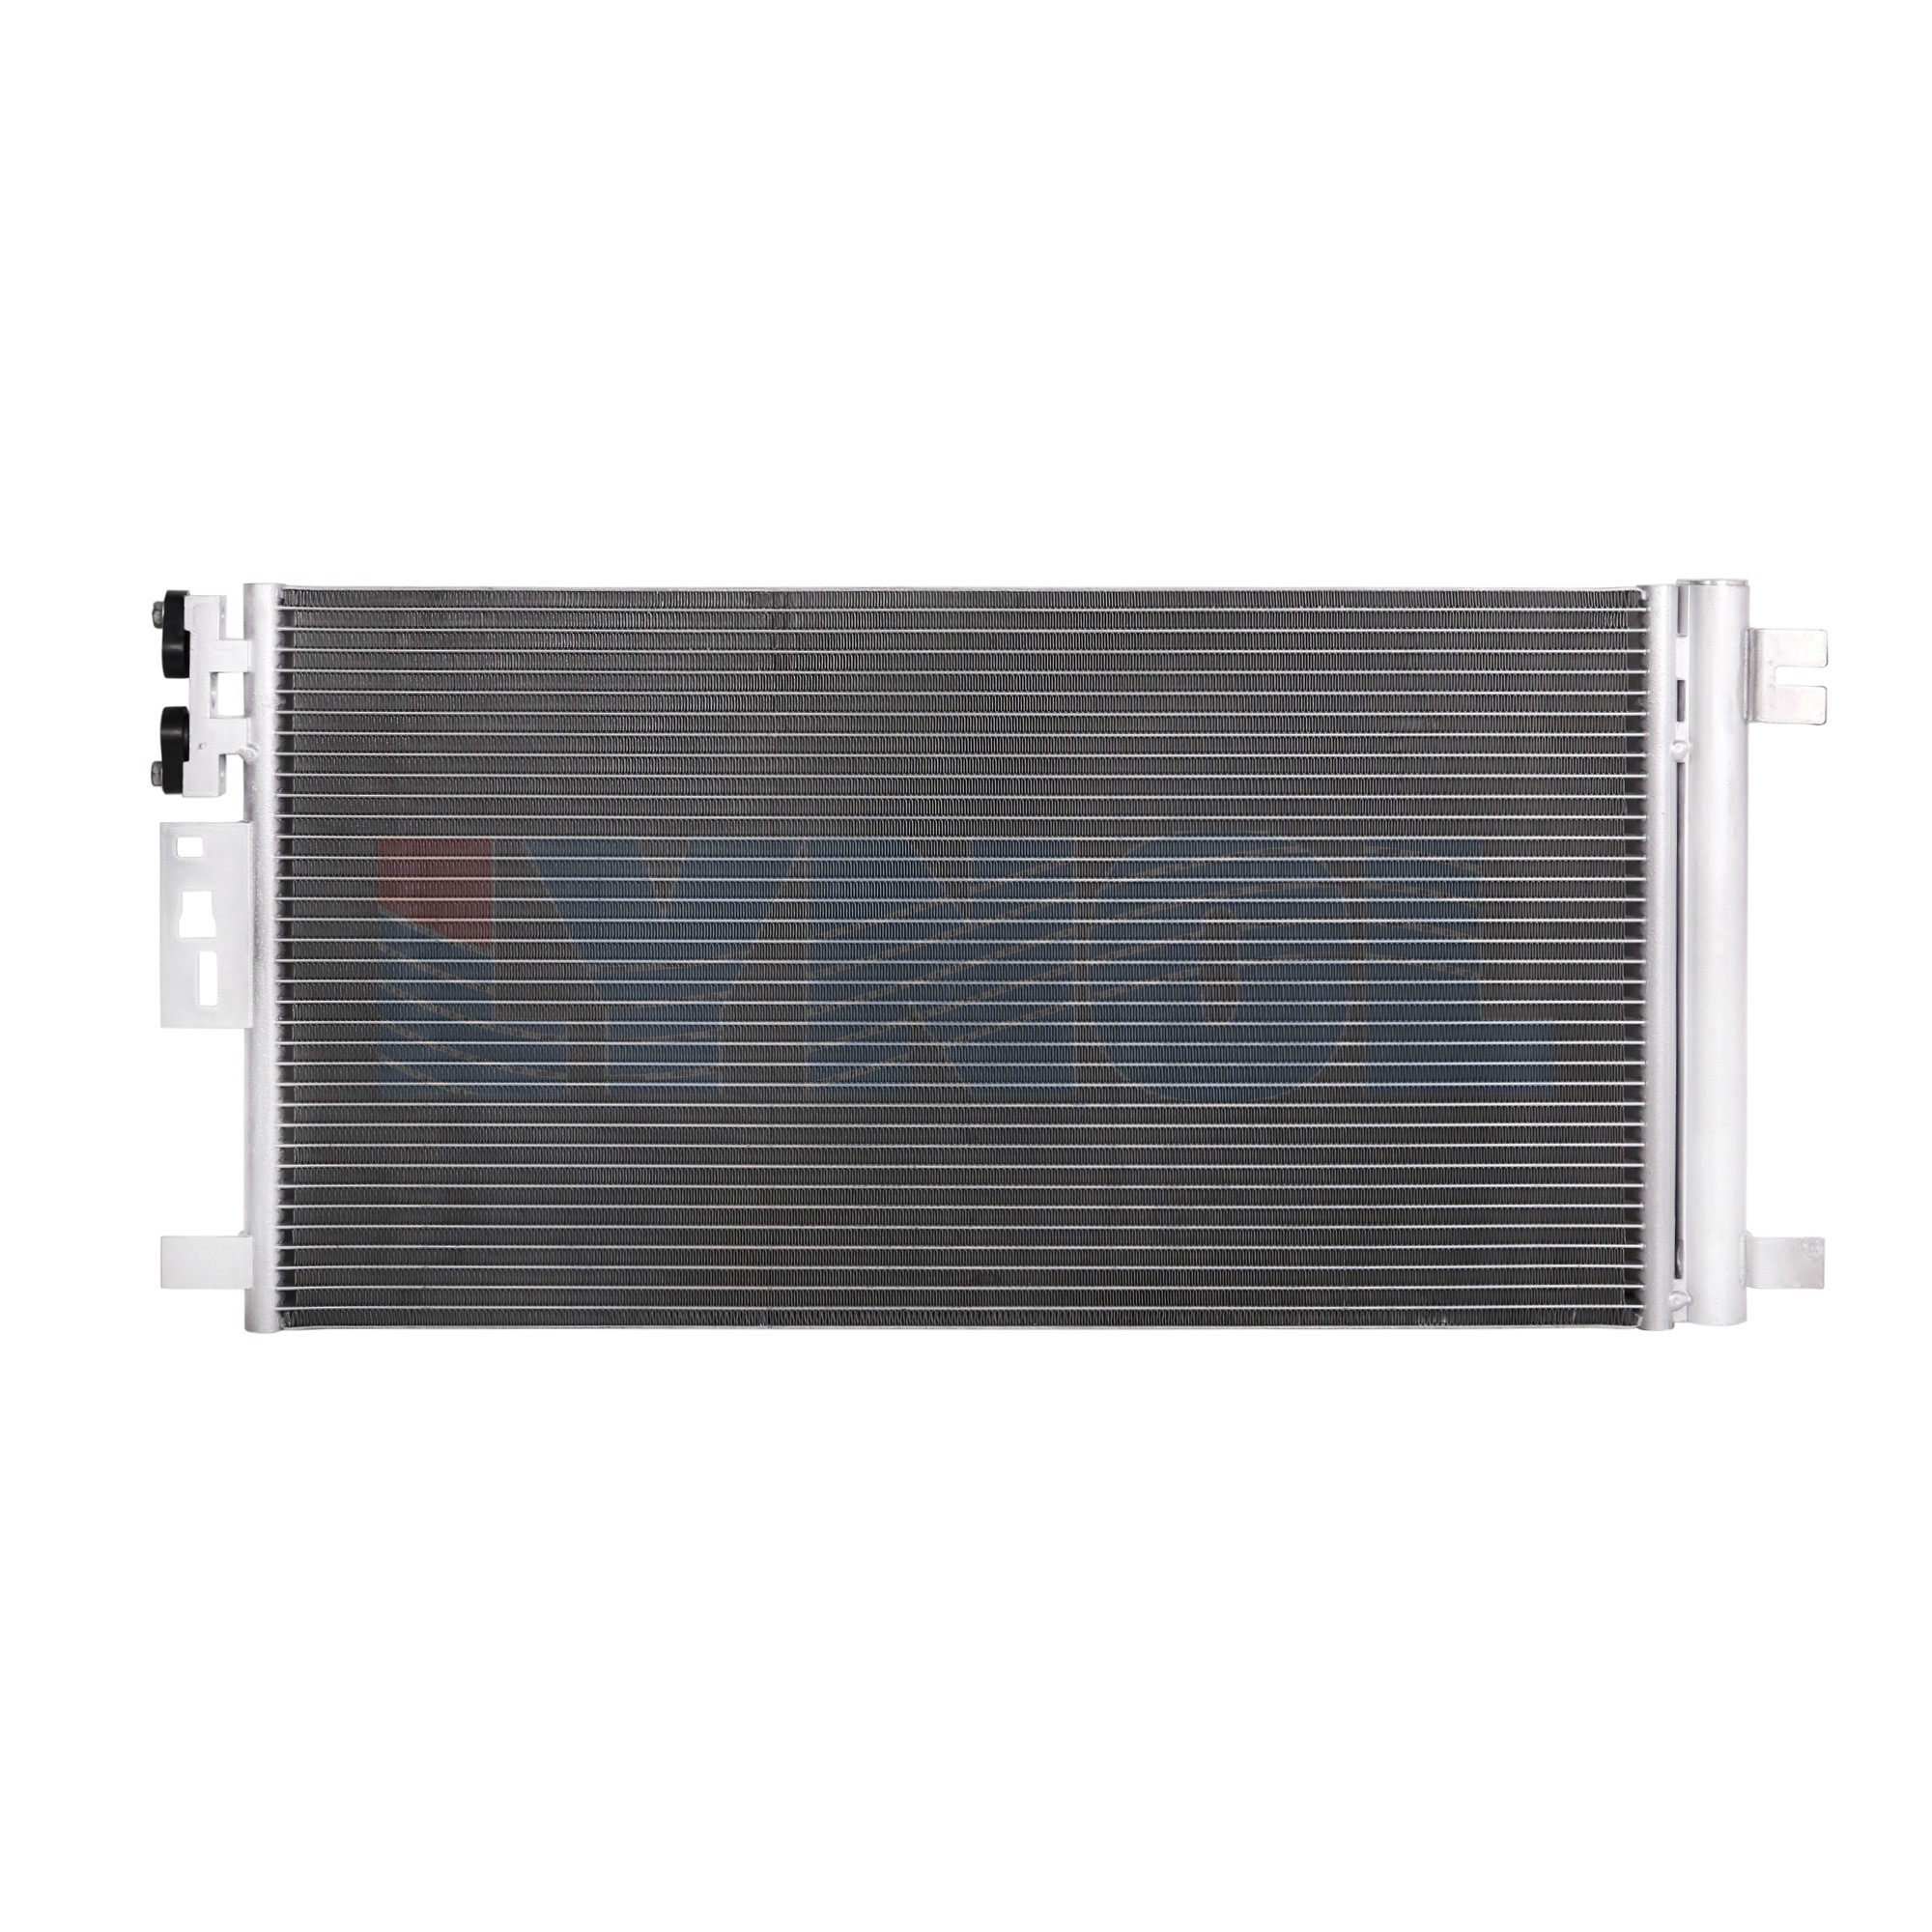 AC4718 - AC Condensers  - 03-10 Chevrolet Cobalt, Pontiac G4 / G5 / Pursuit, Saturn Ion, with Dryer